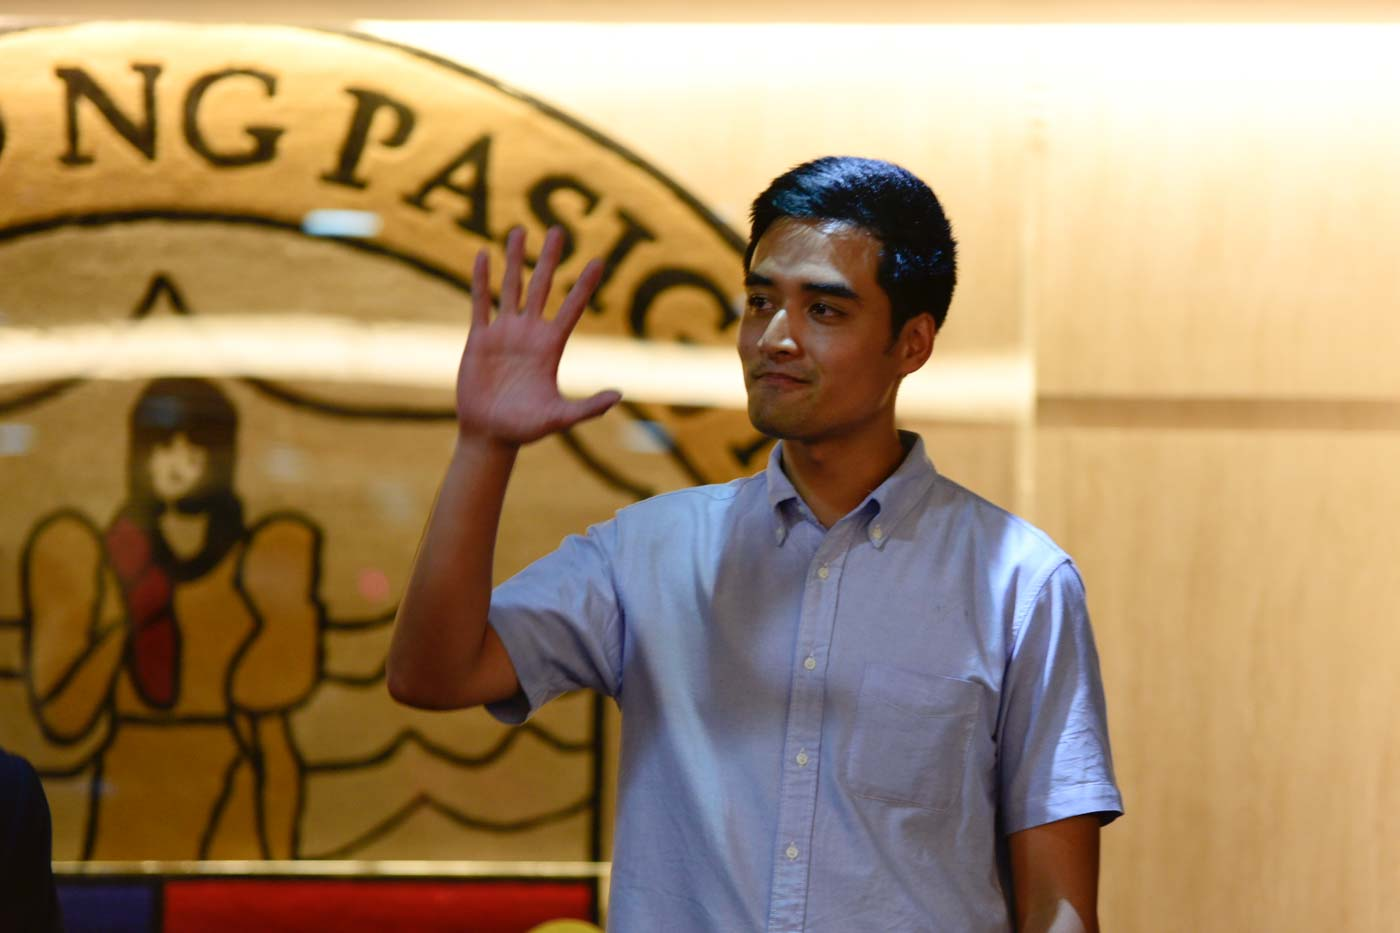 NO CORRUPTION. Pasig City Mayor vows never to accept u0022kickbacksu0022 as he pushes for transparency in bidding for public projects. File photo by Rob Reyes/Rappler